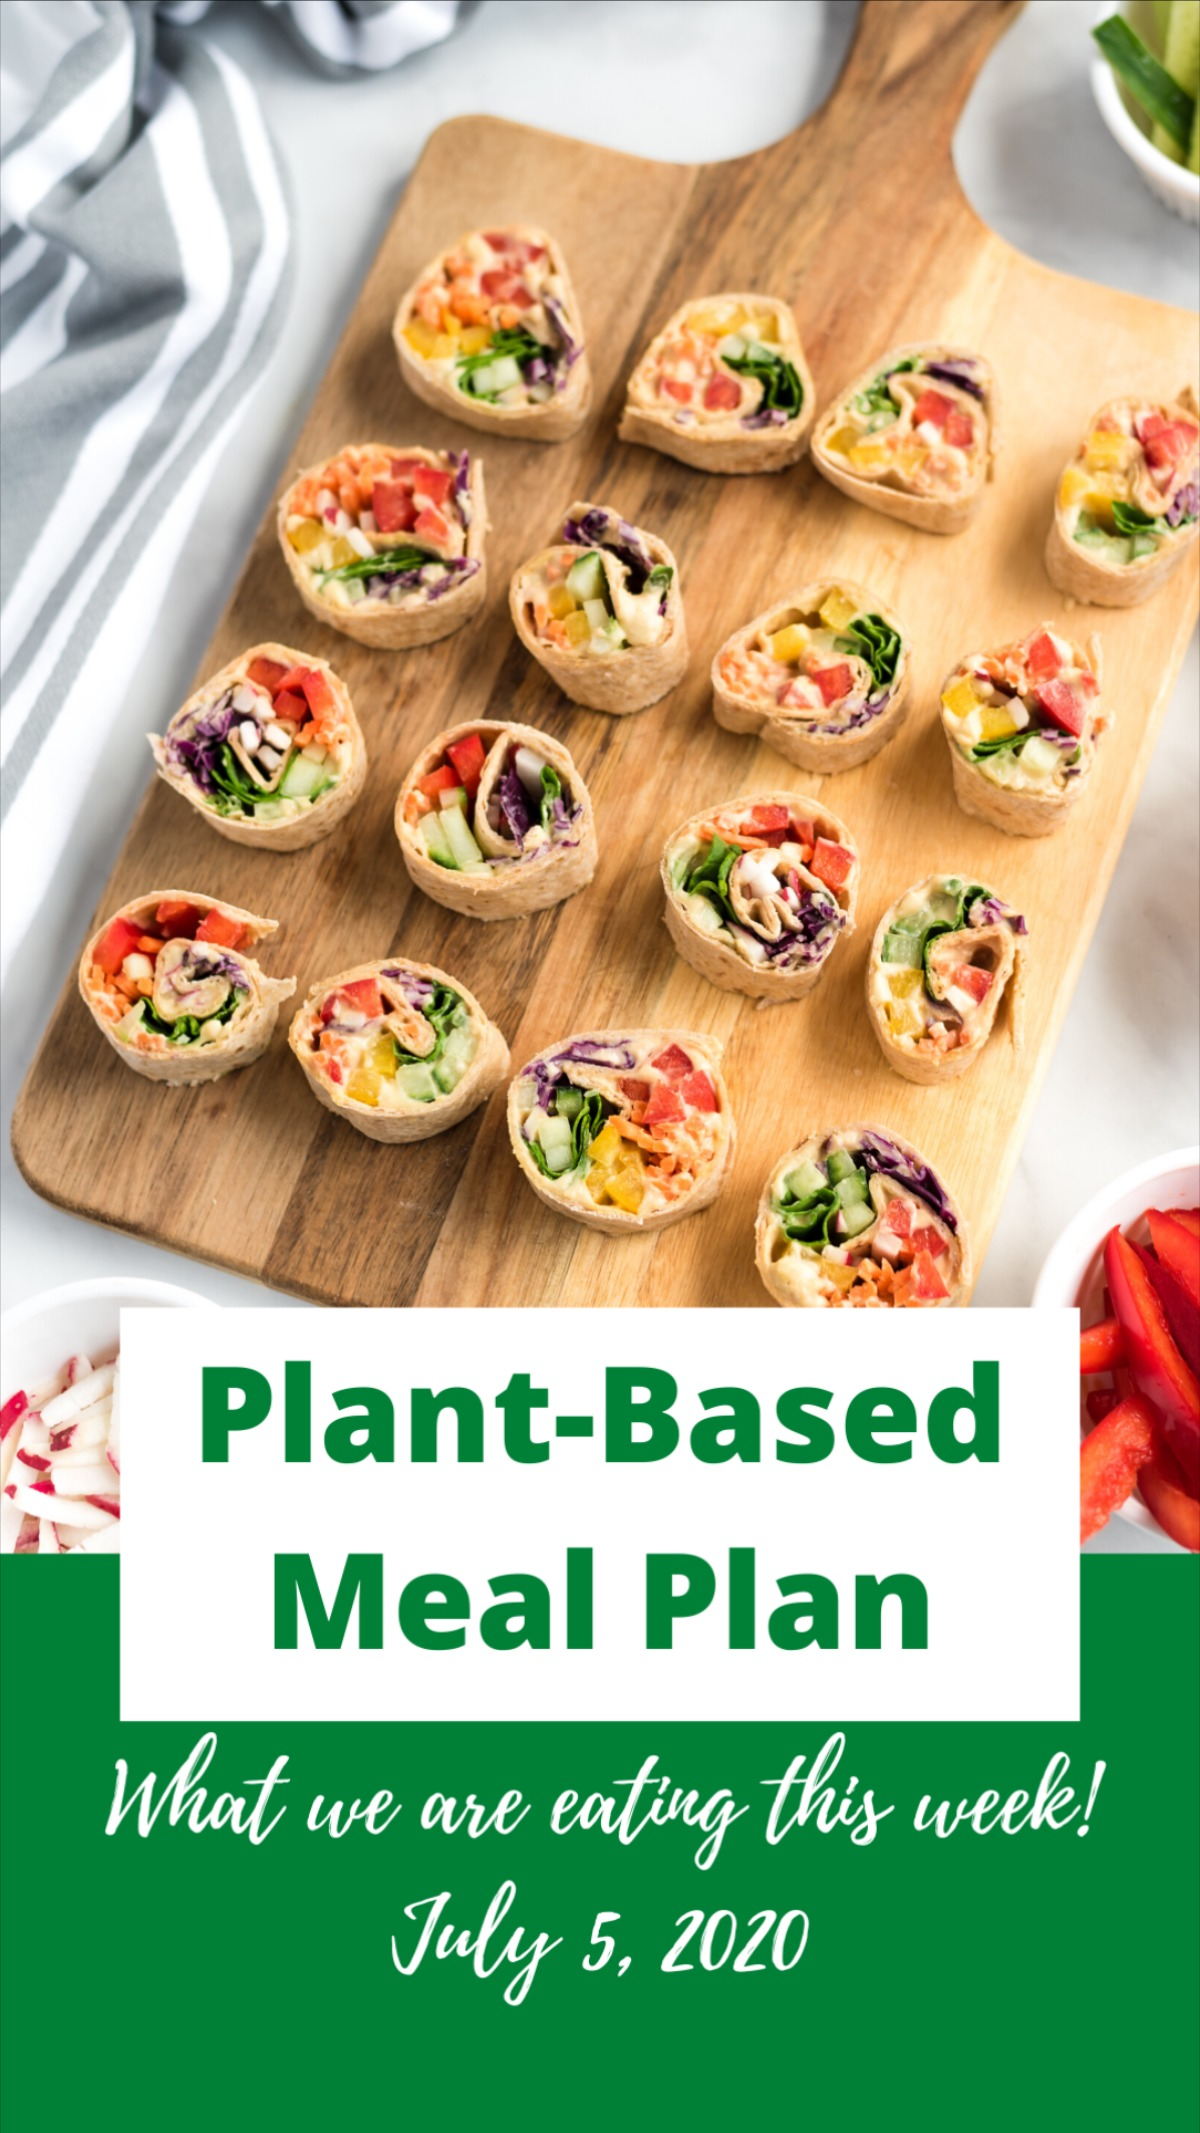 Summer Vegan Meal Plan